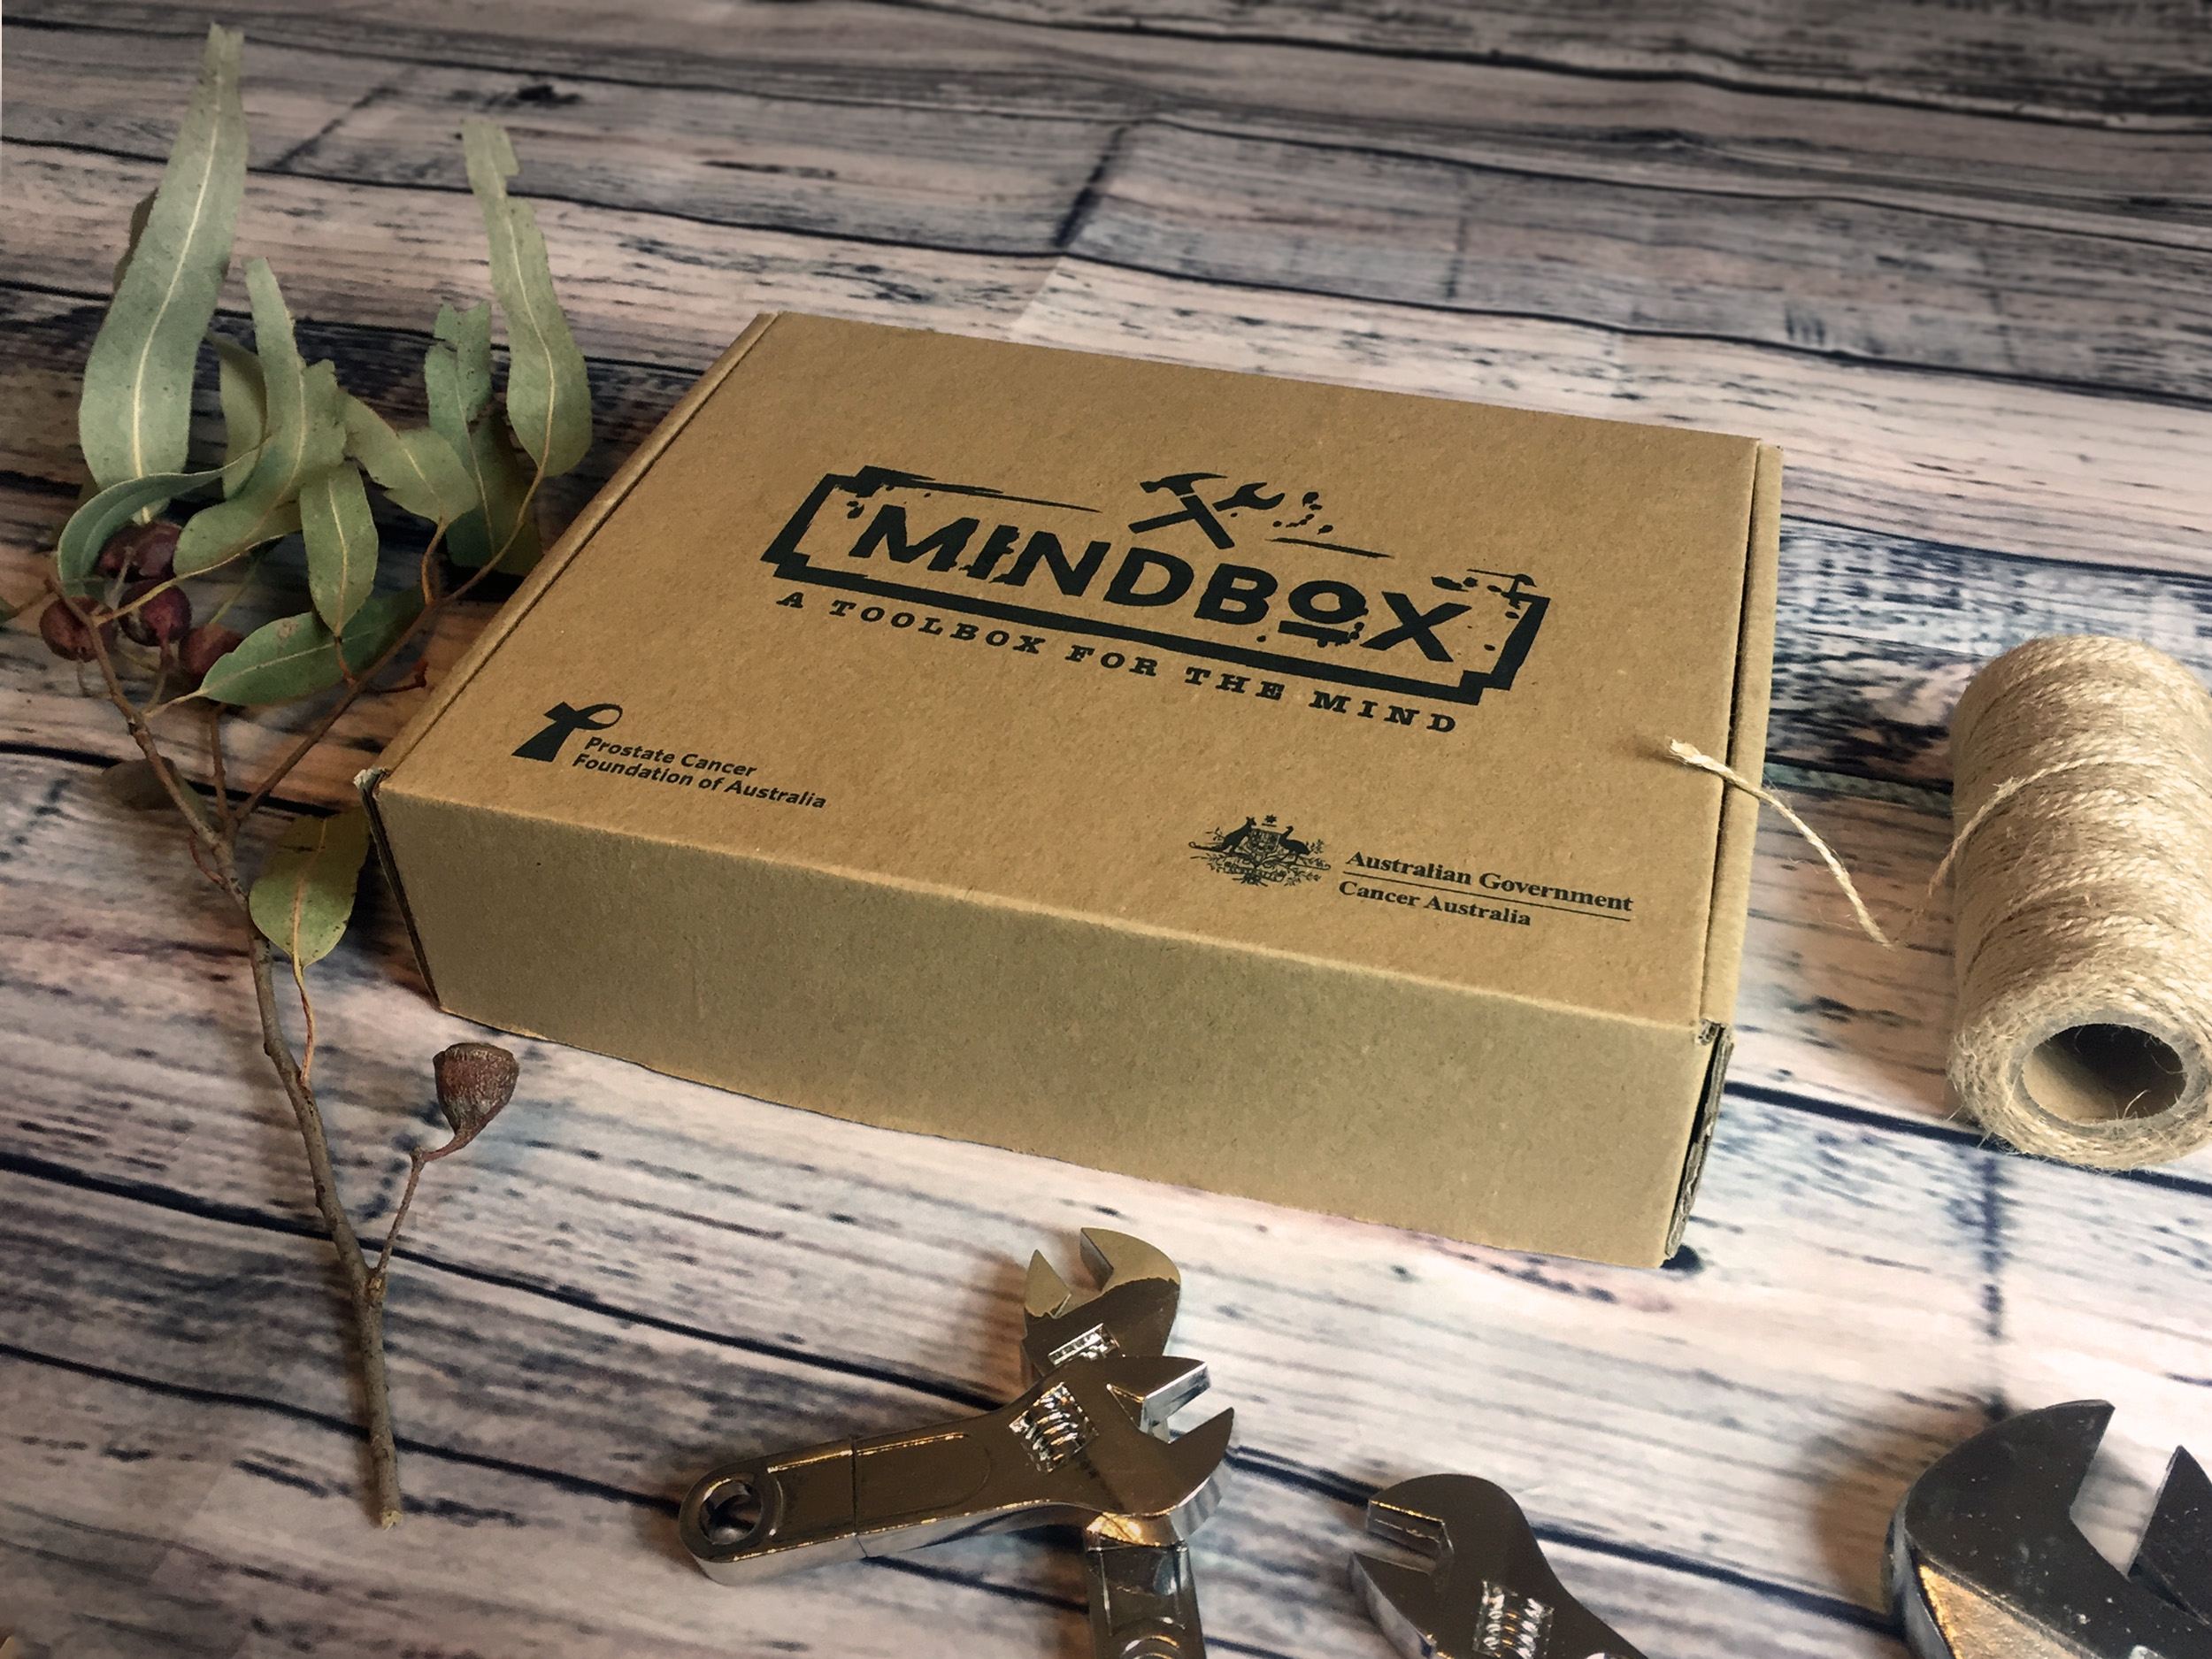 Mindbox - A toolbox for the mind